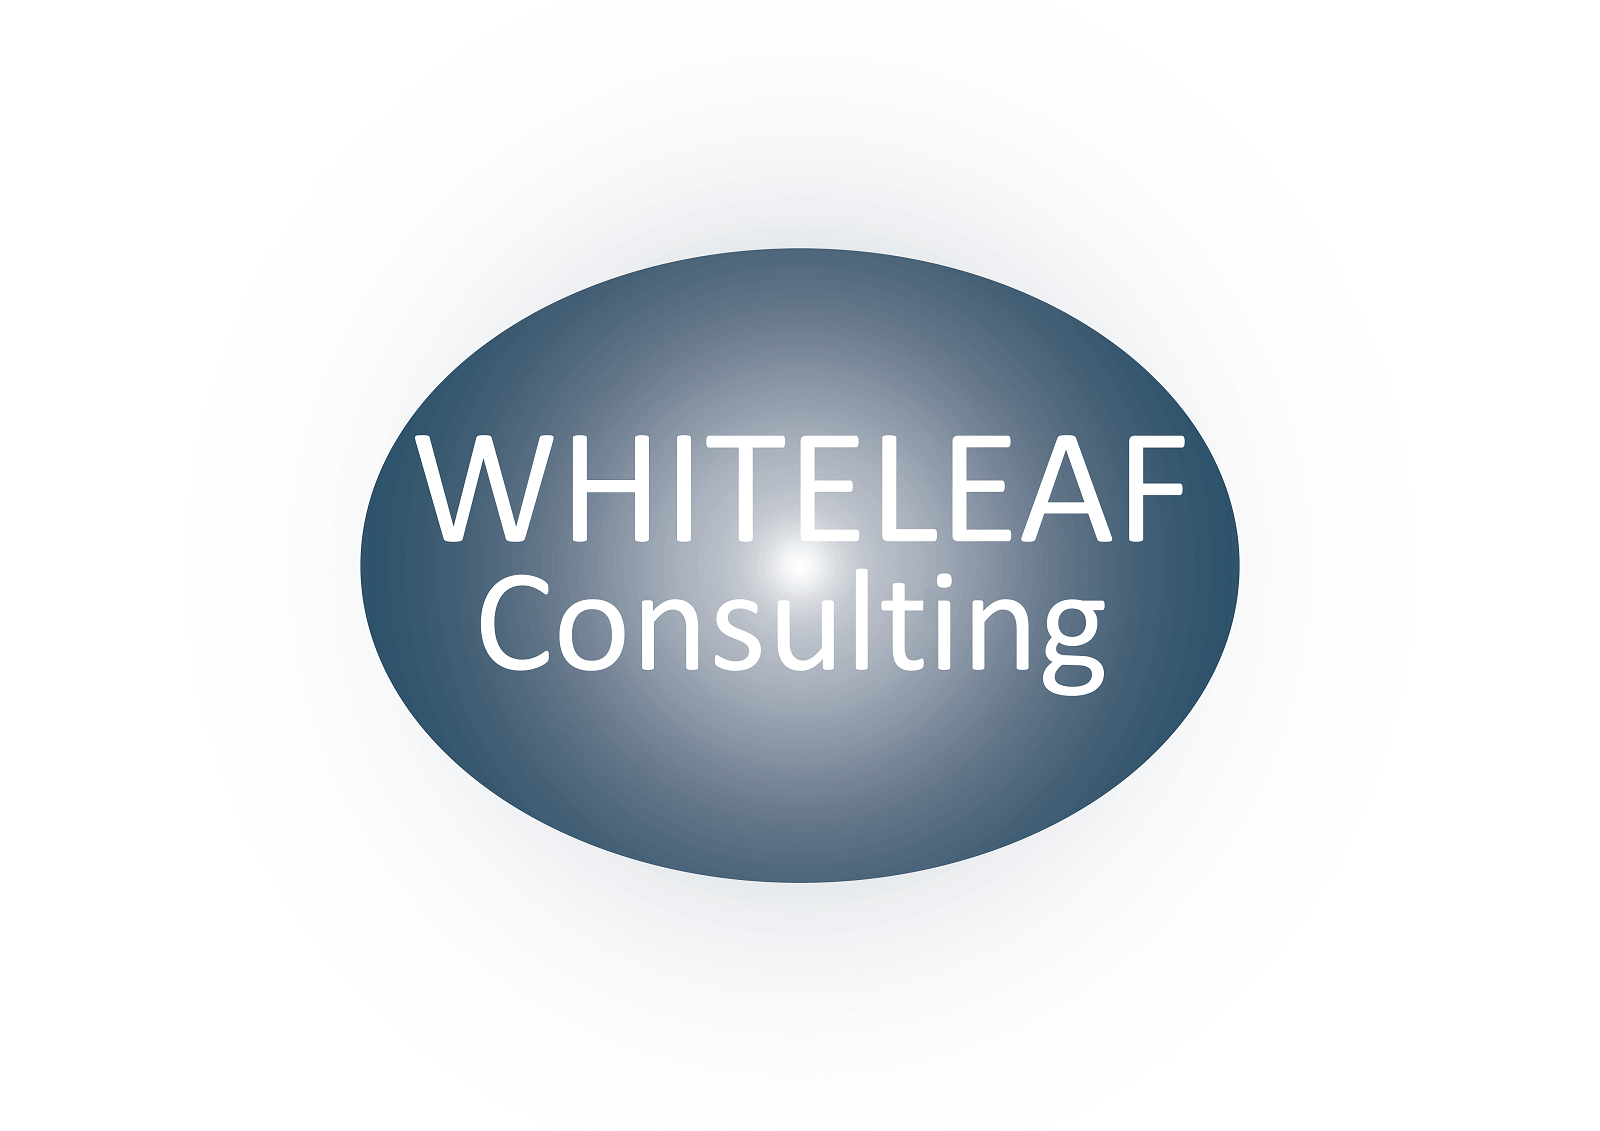 Whiteleaf Consulting logo